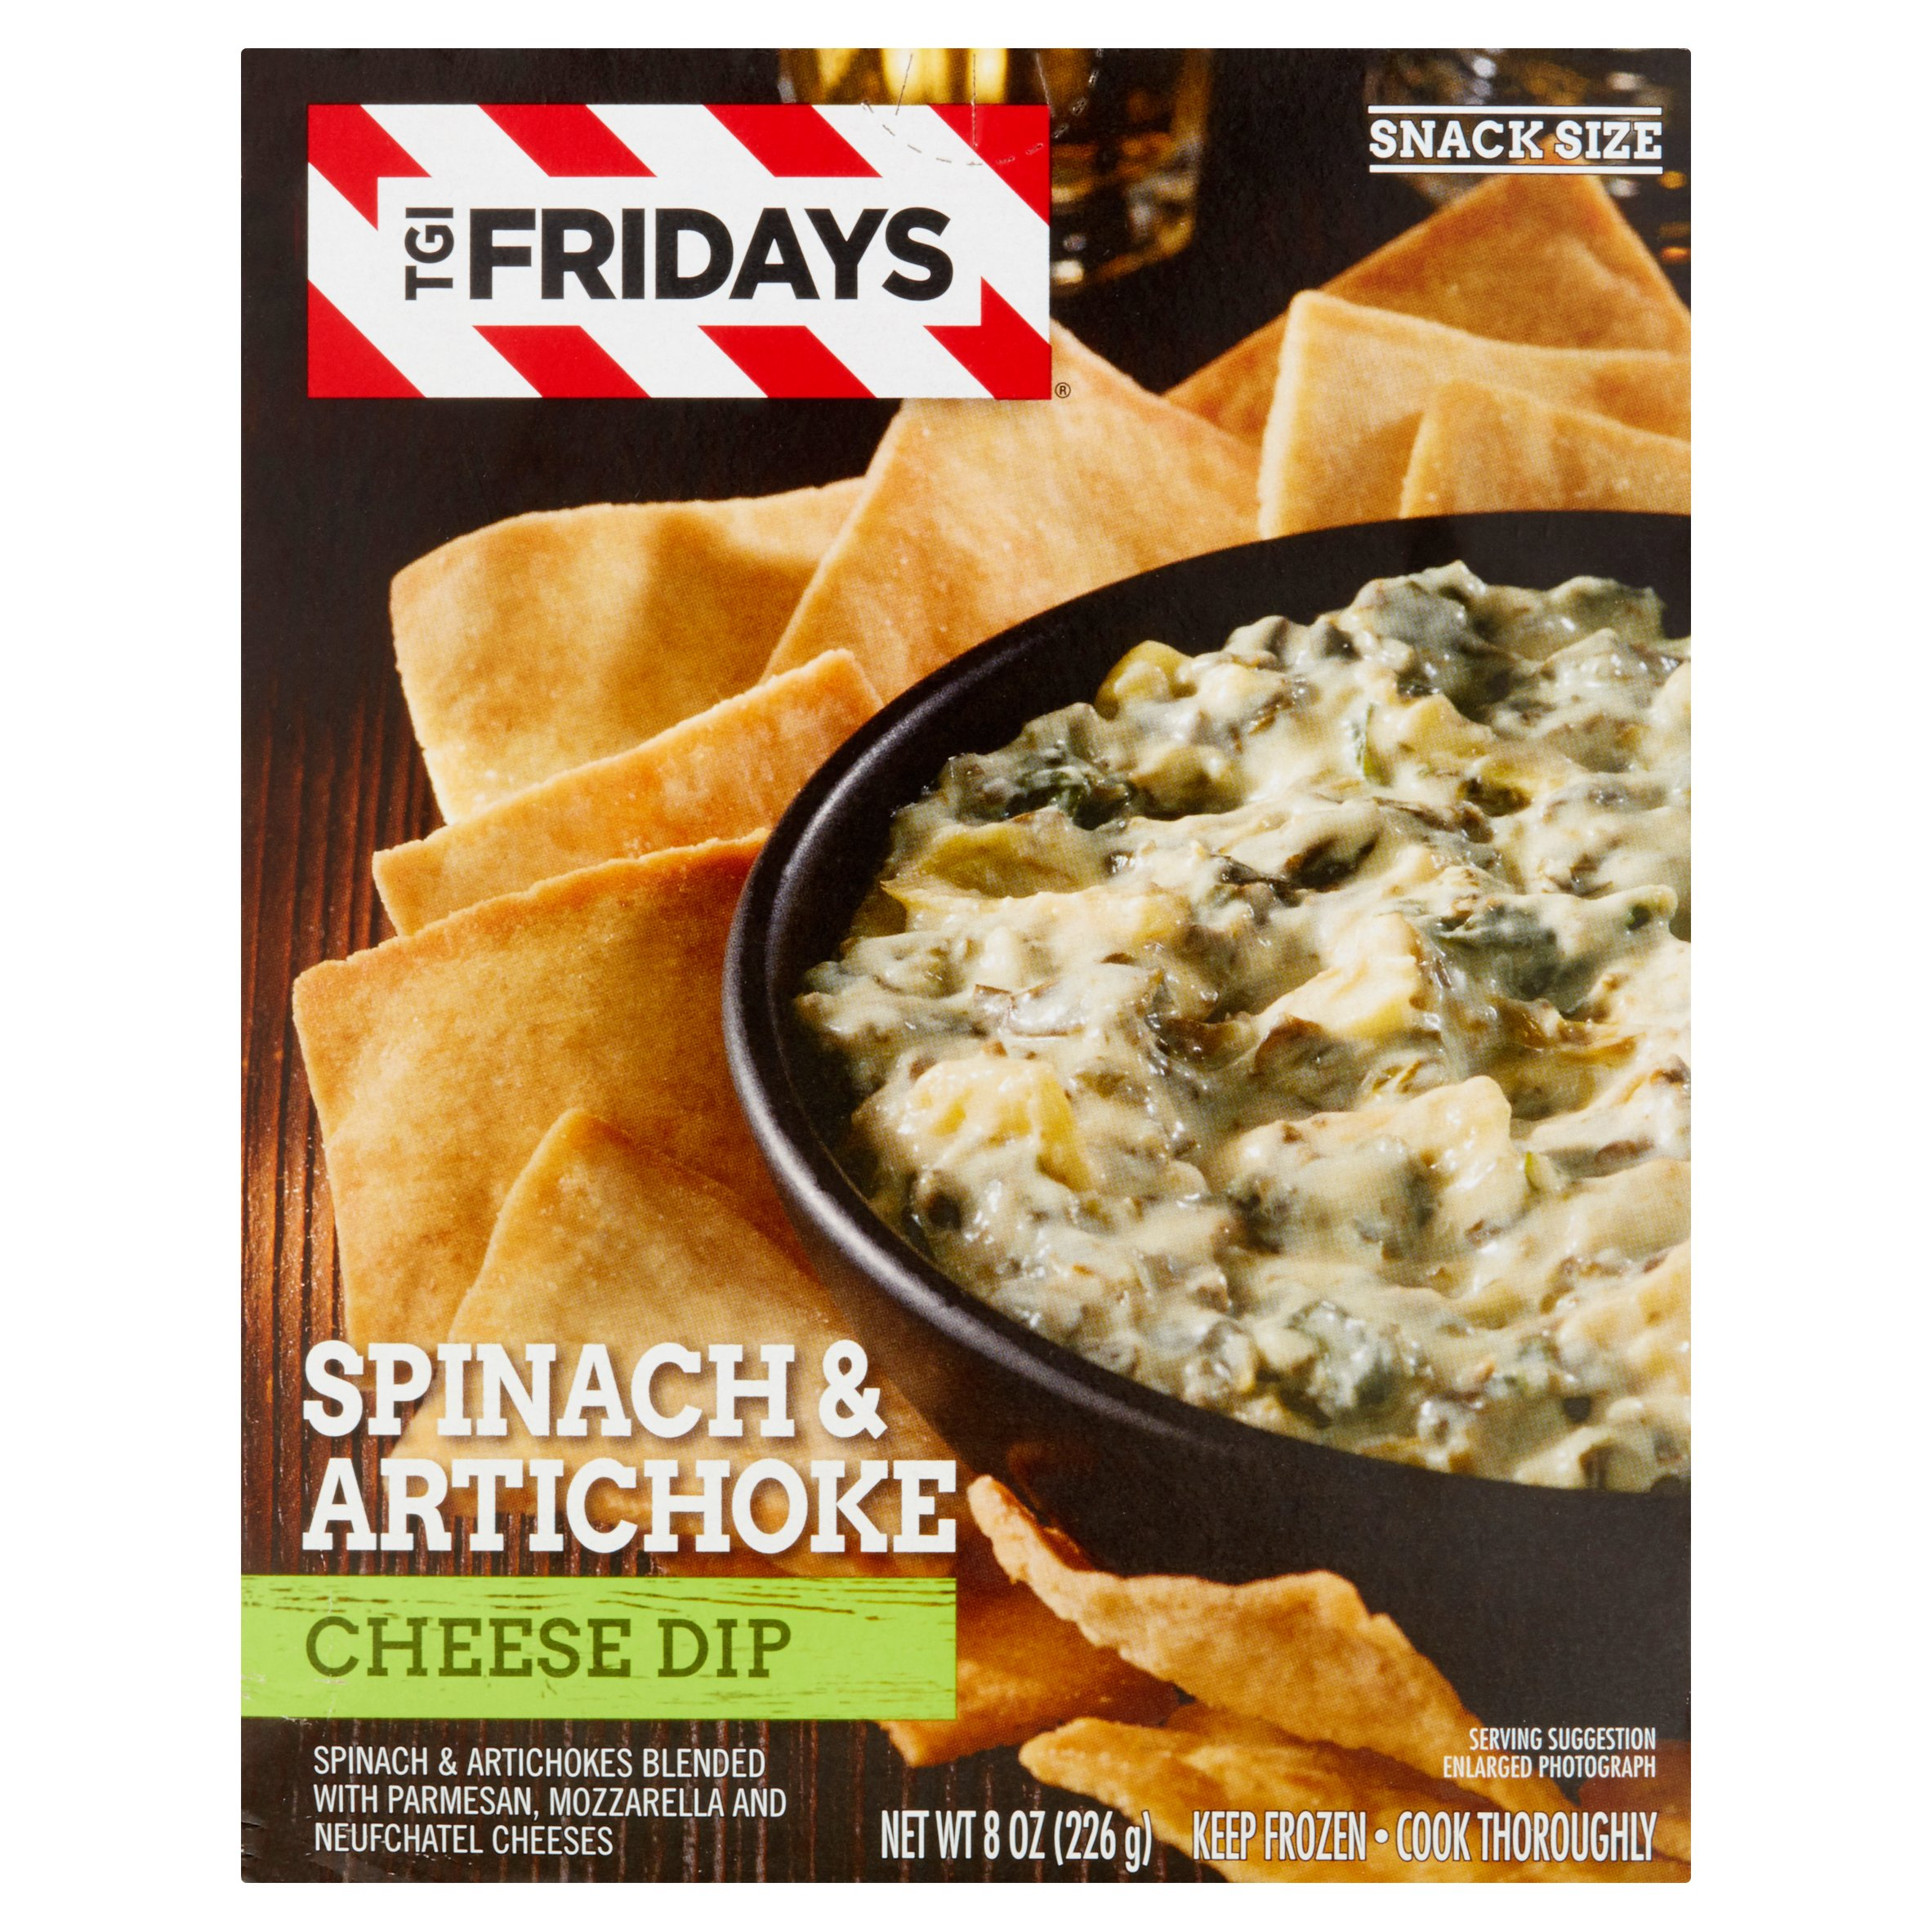 TGI Fridays Spinach & Artichoke Cheese Dip, 8 oz